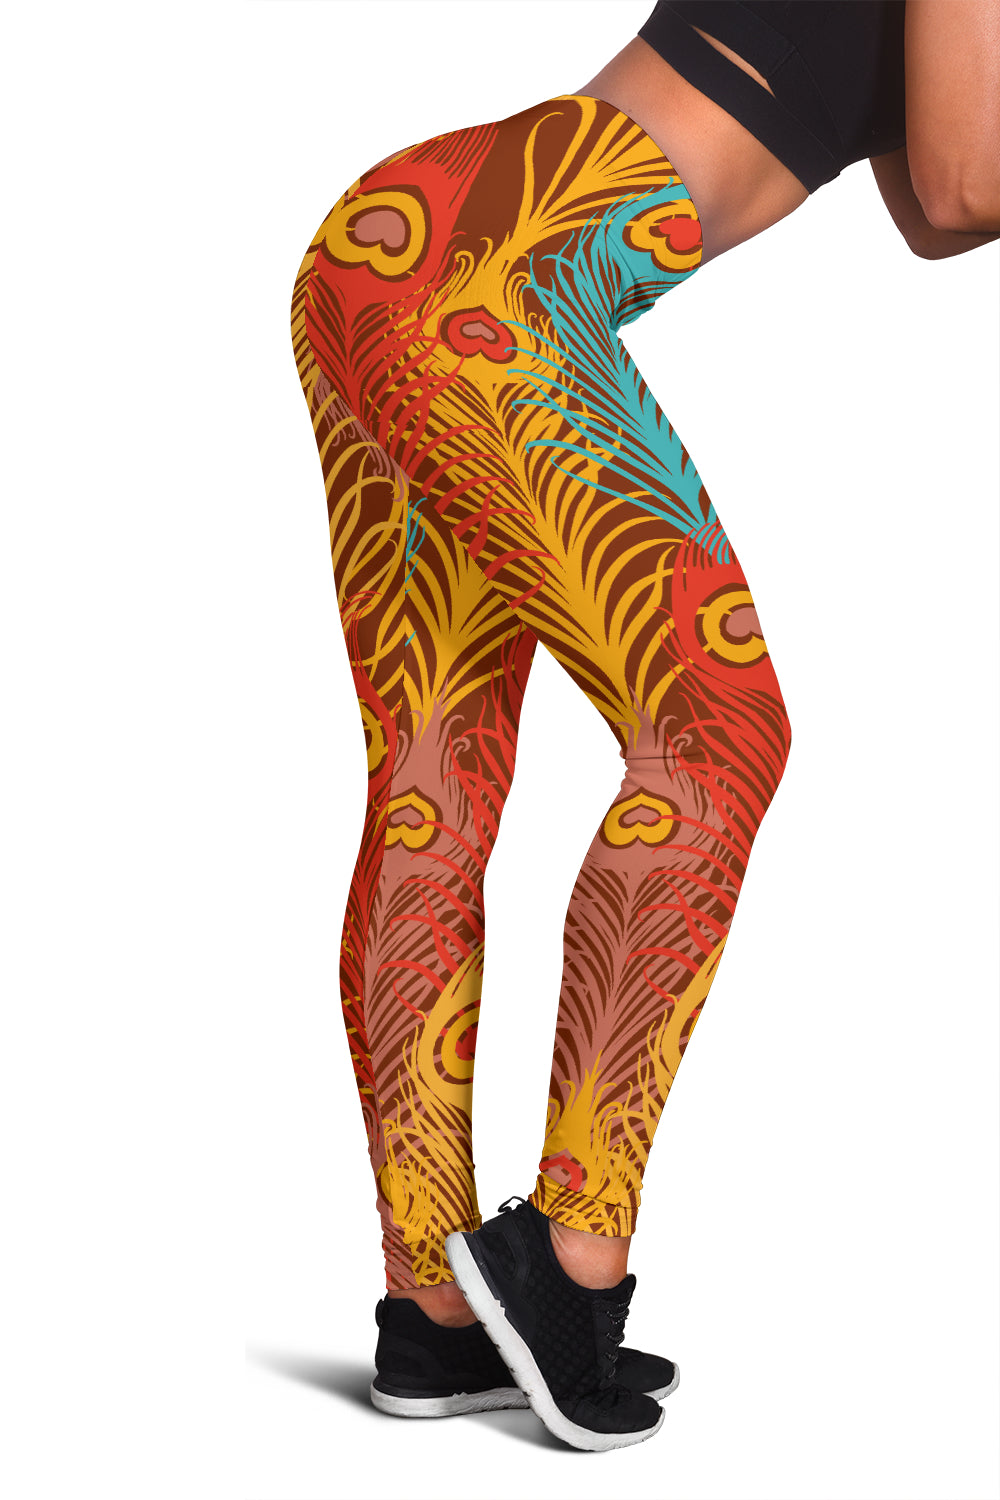 Colorful Peacock Leggings - Her Athletic Lifestyle